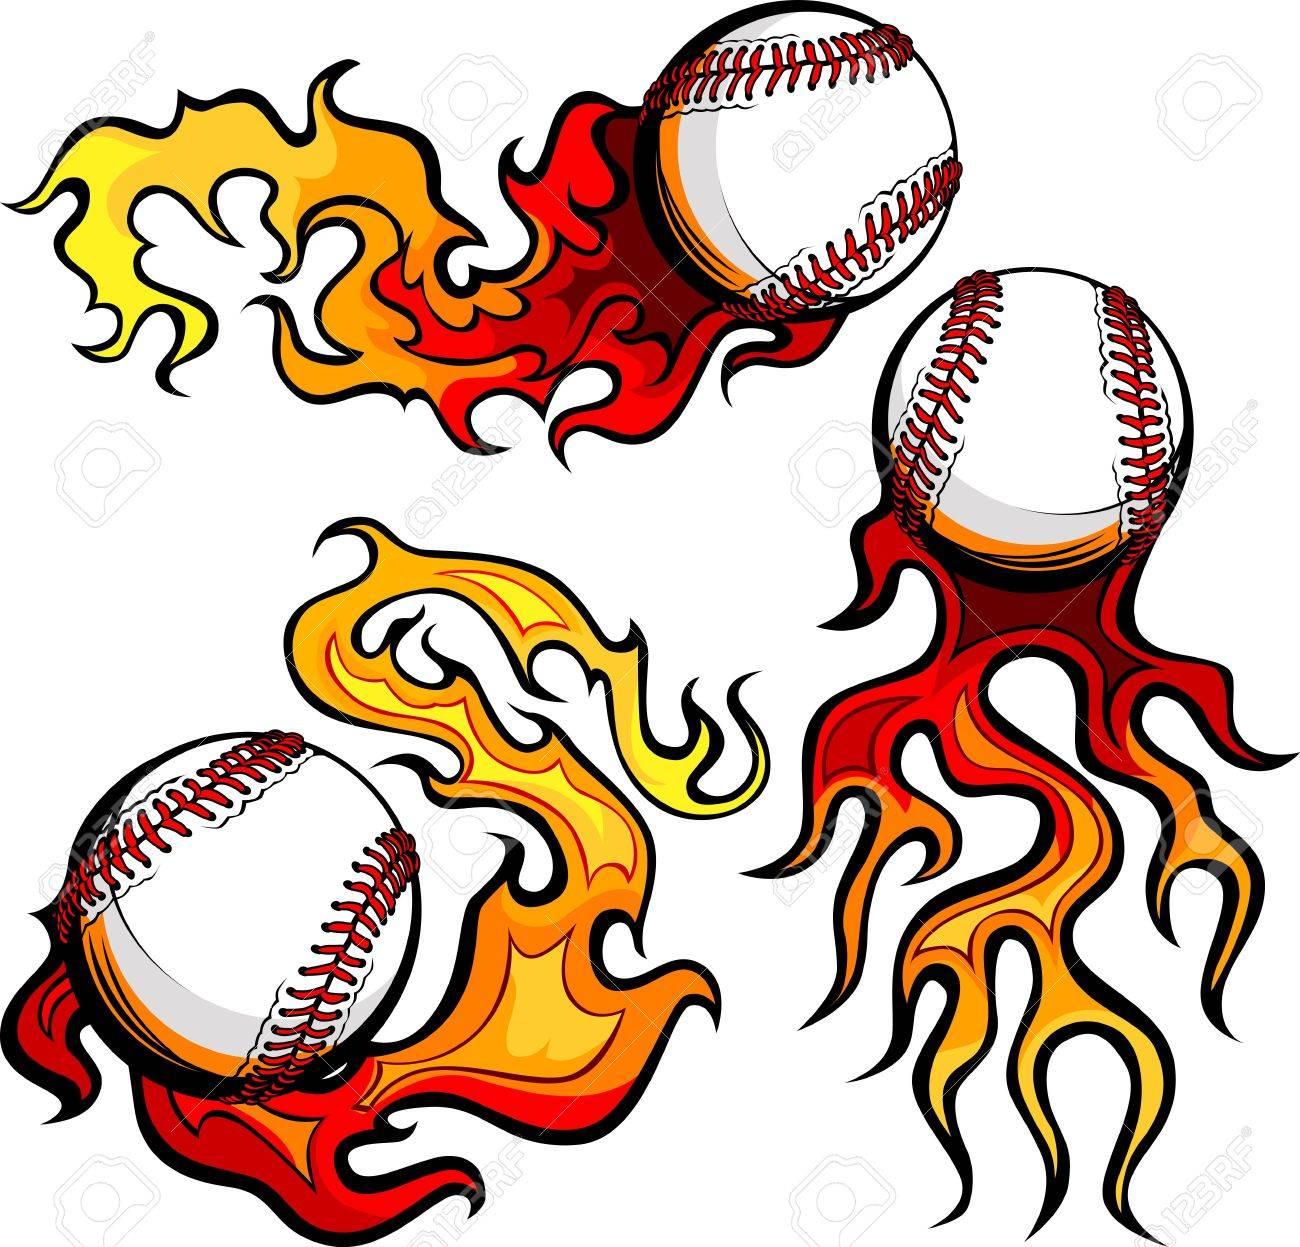 Graphic baseballs sport vector image with flames Stock Vector - 12498007